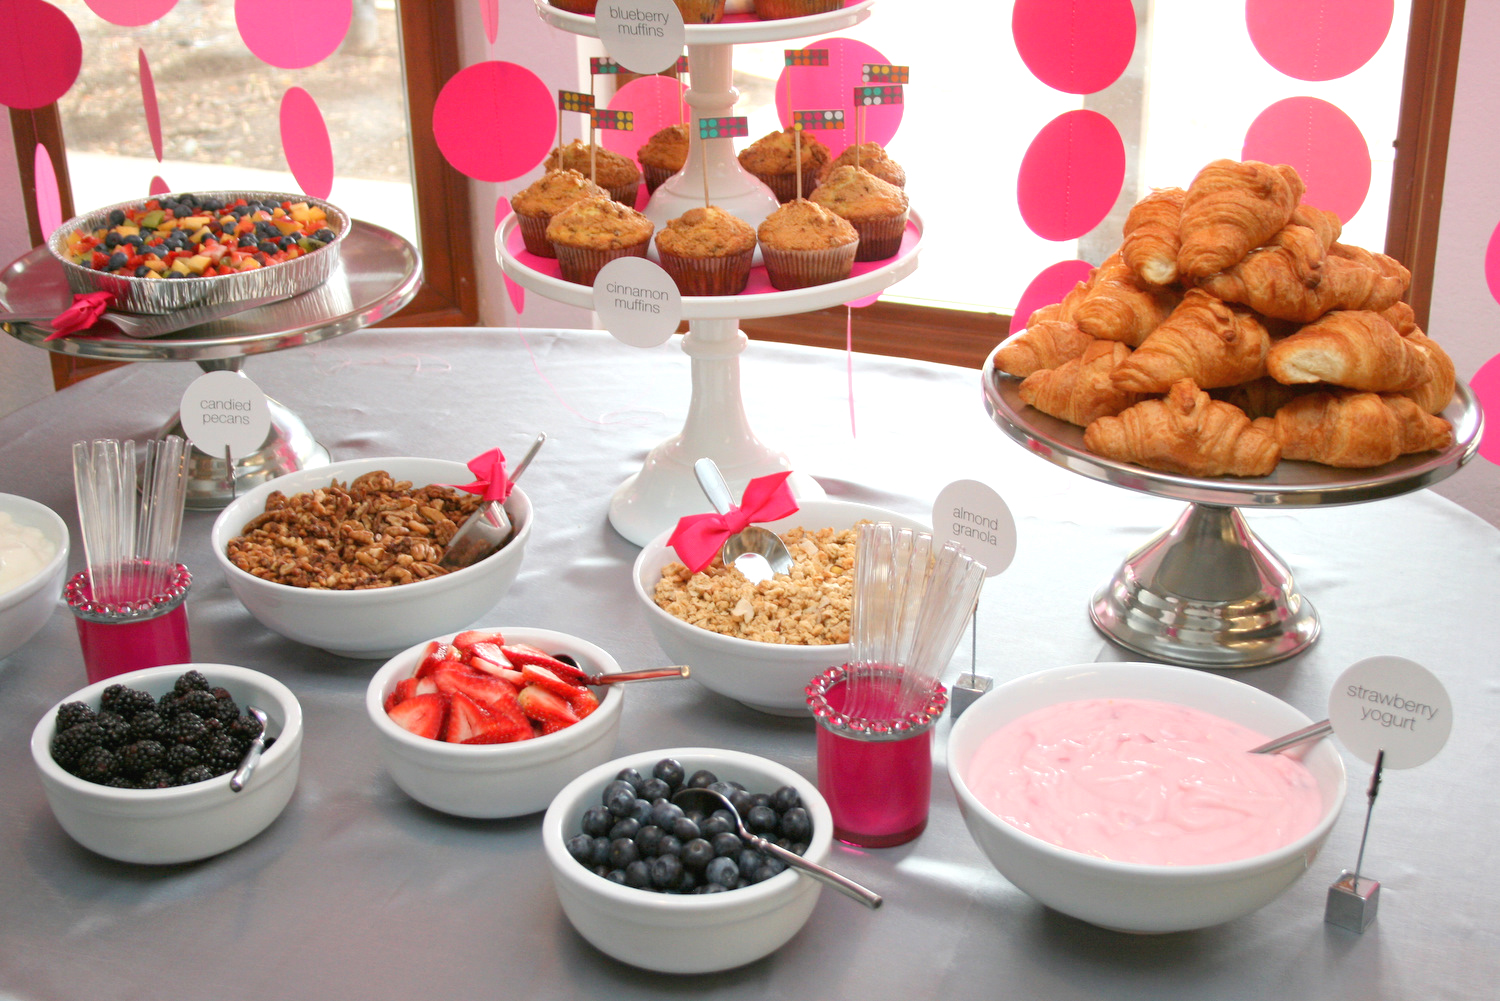 baby shower brunch is a fun way to enjoy those special hours with